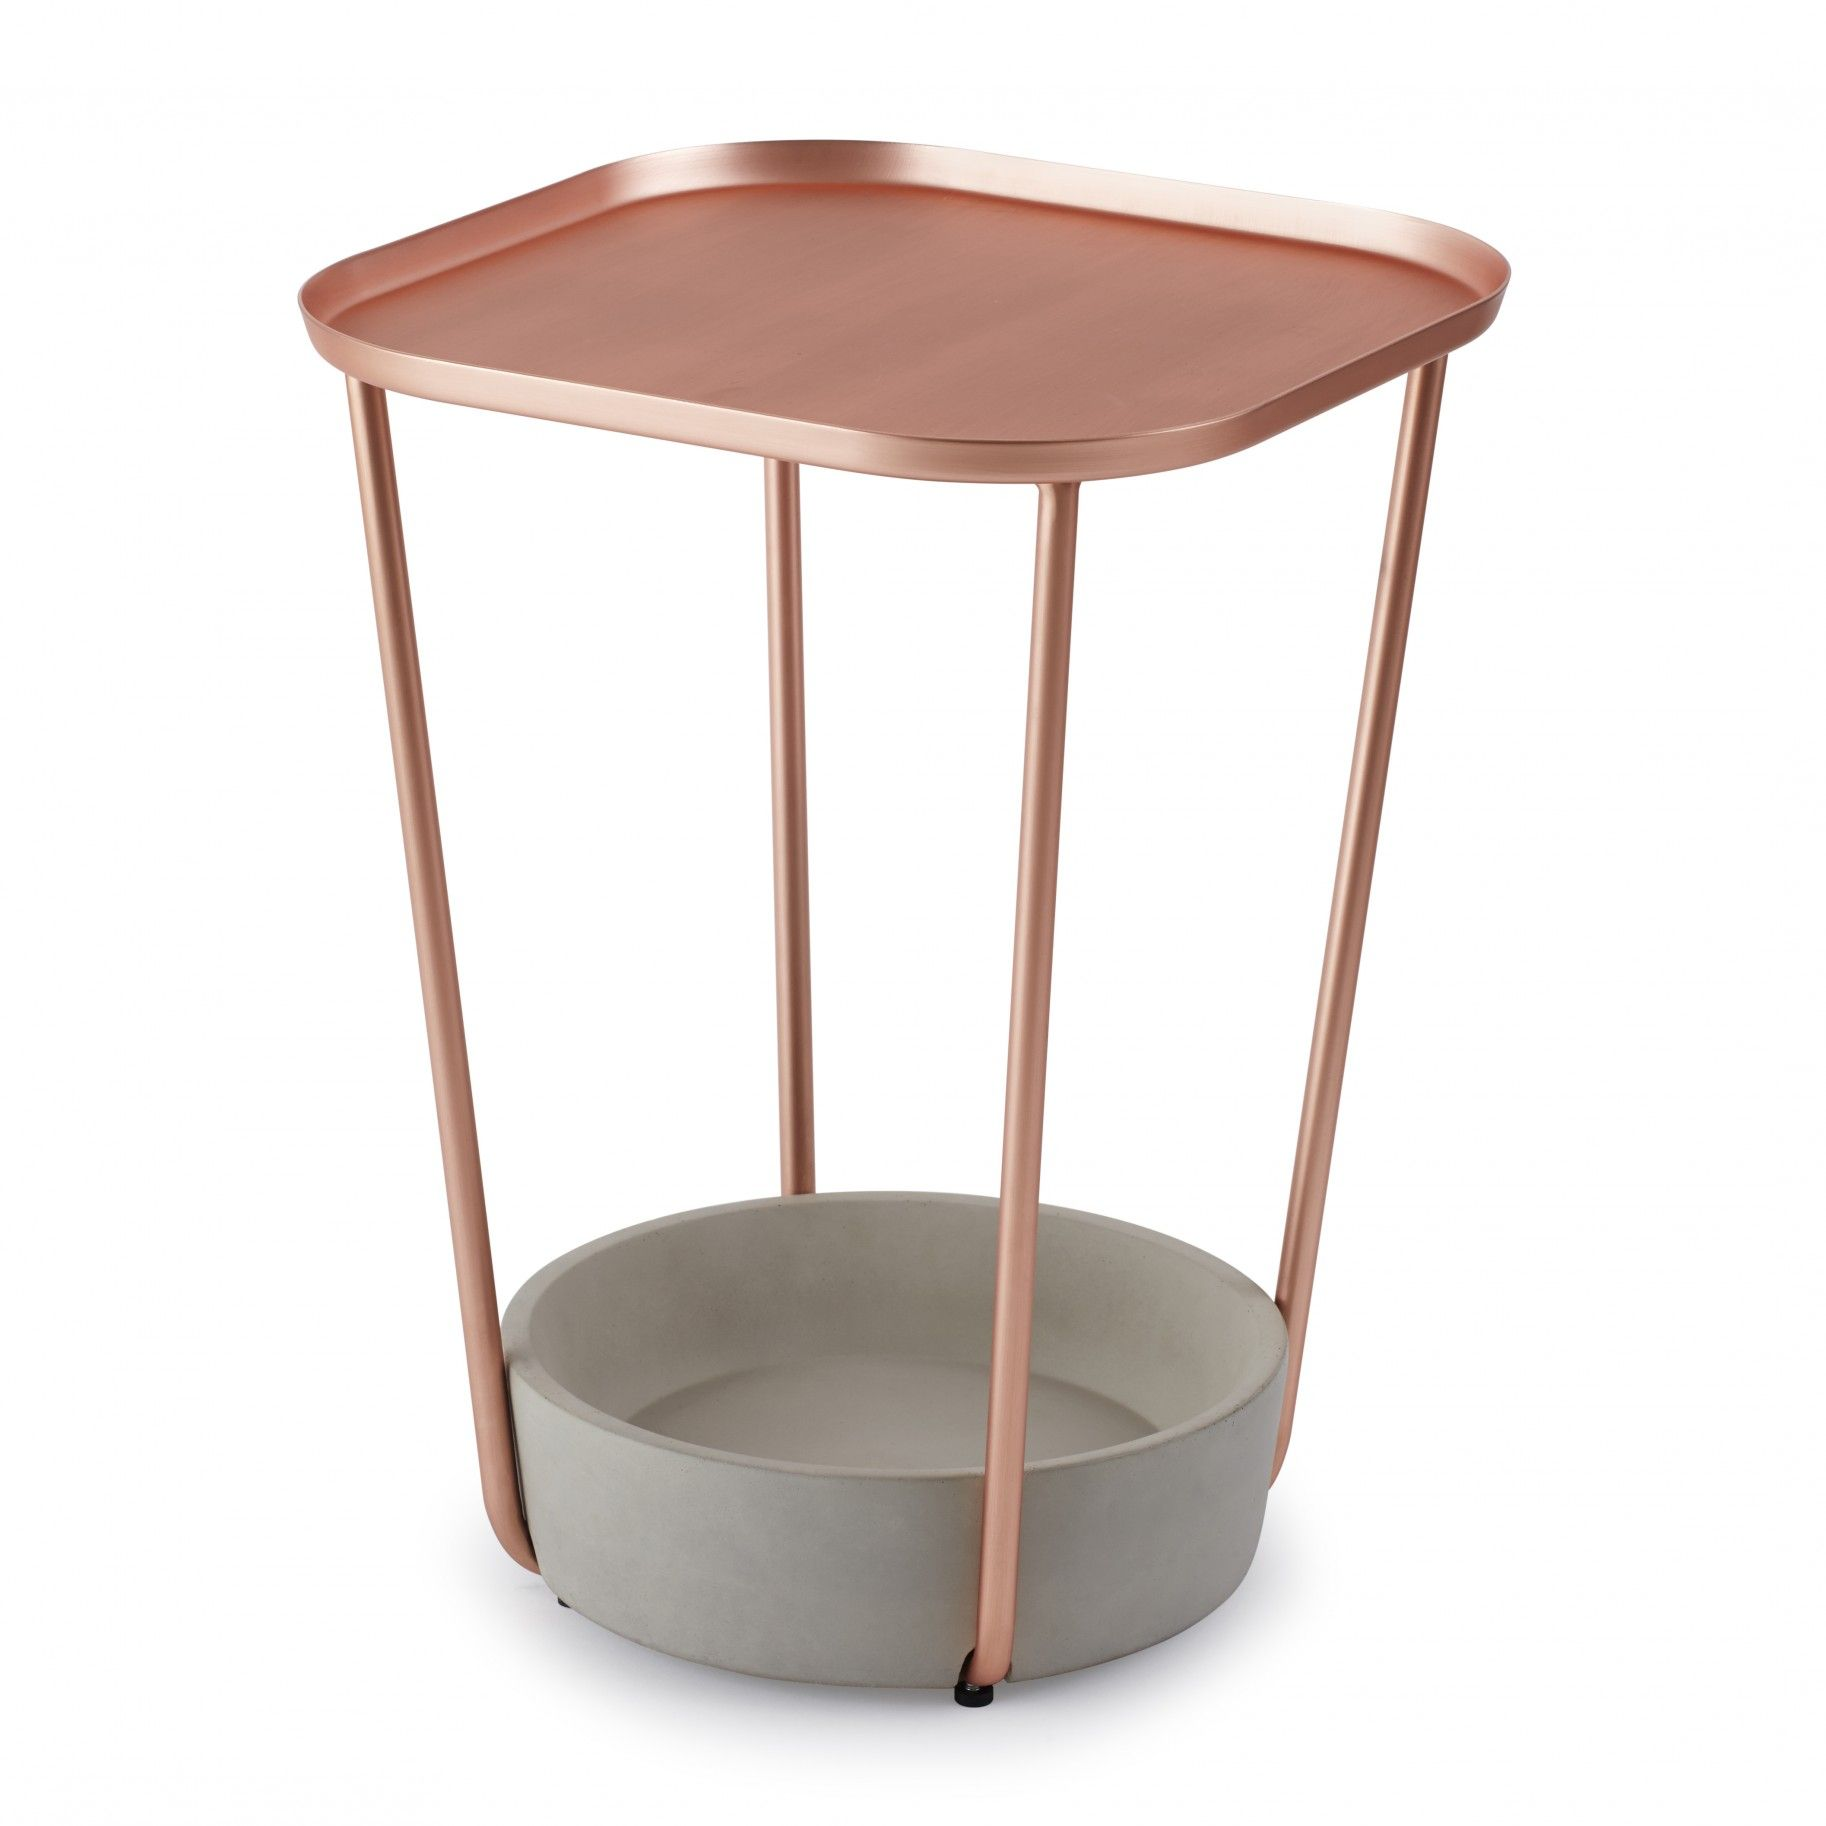 Pin By Product Bureau On Tables Coffee Side: Petite Table Couleur Or Rose